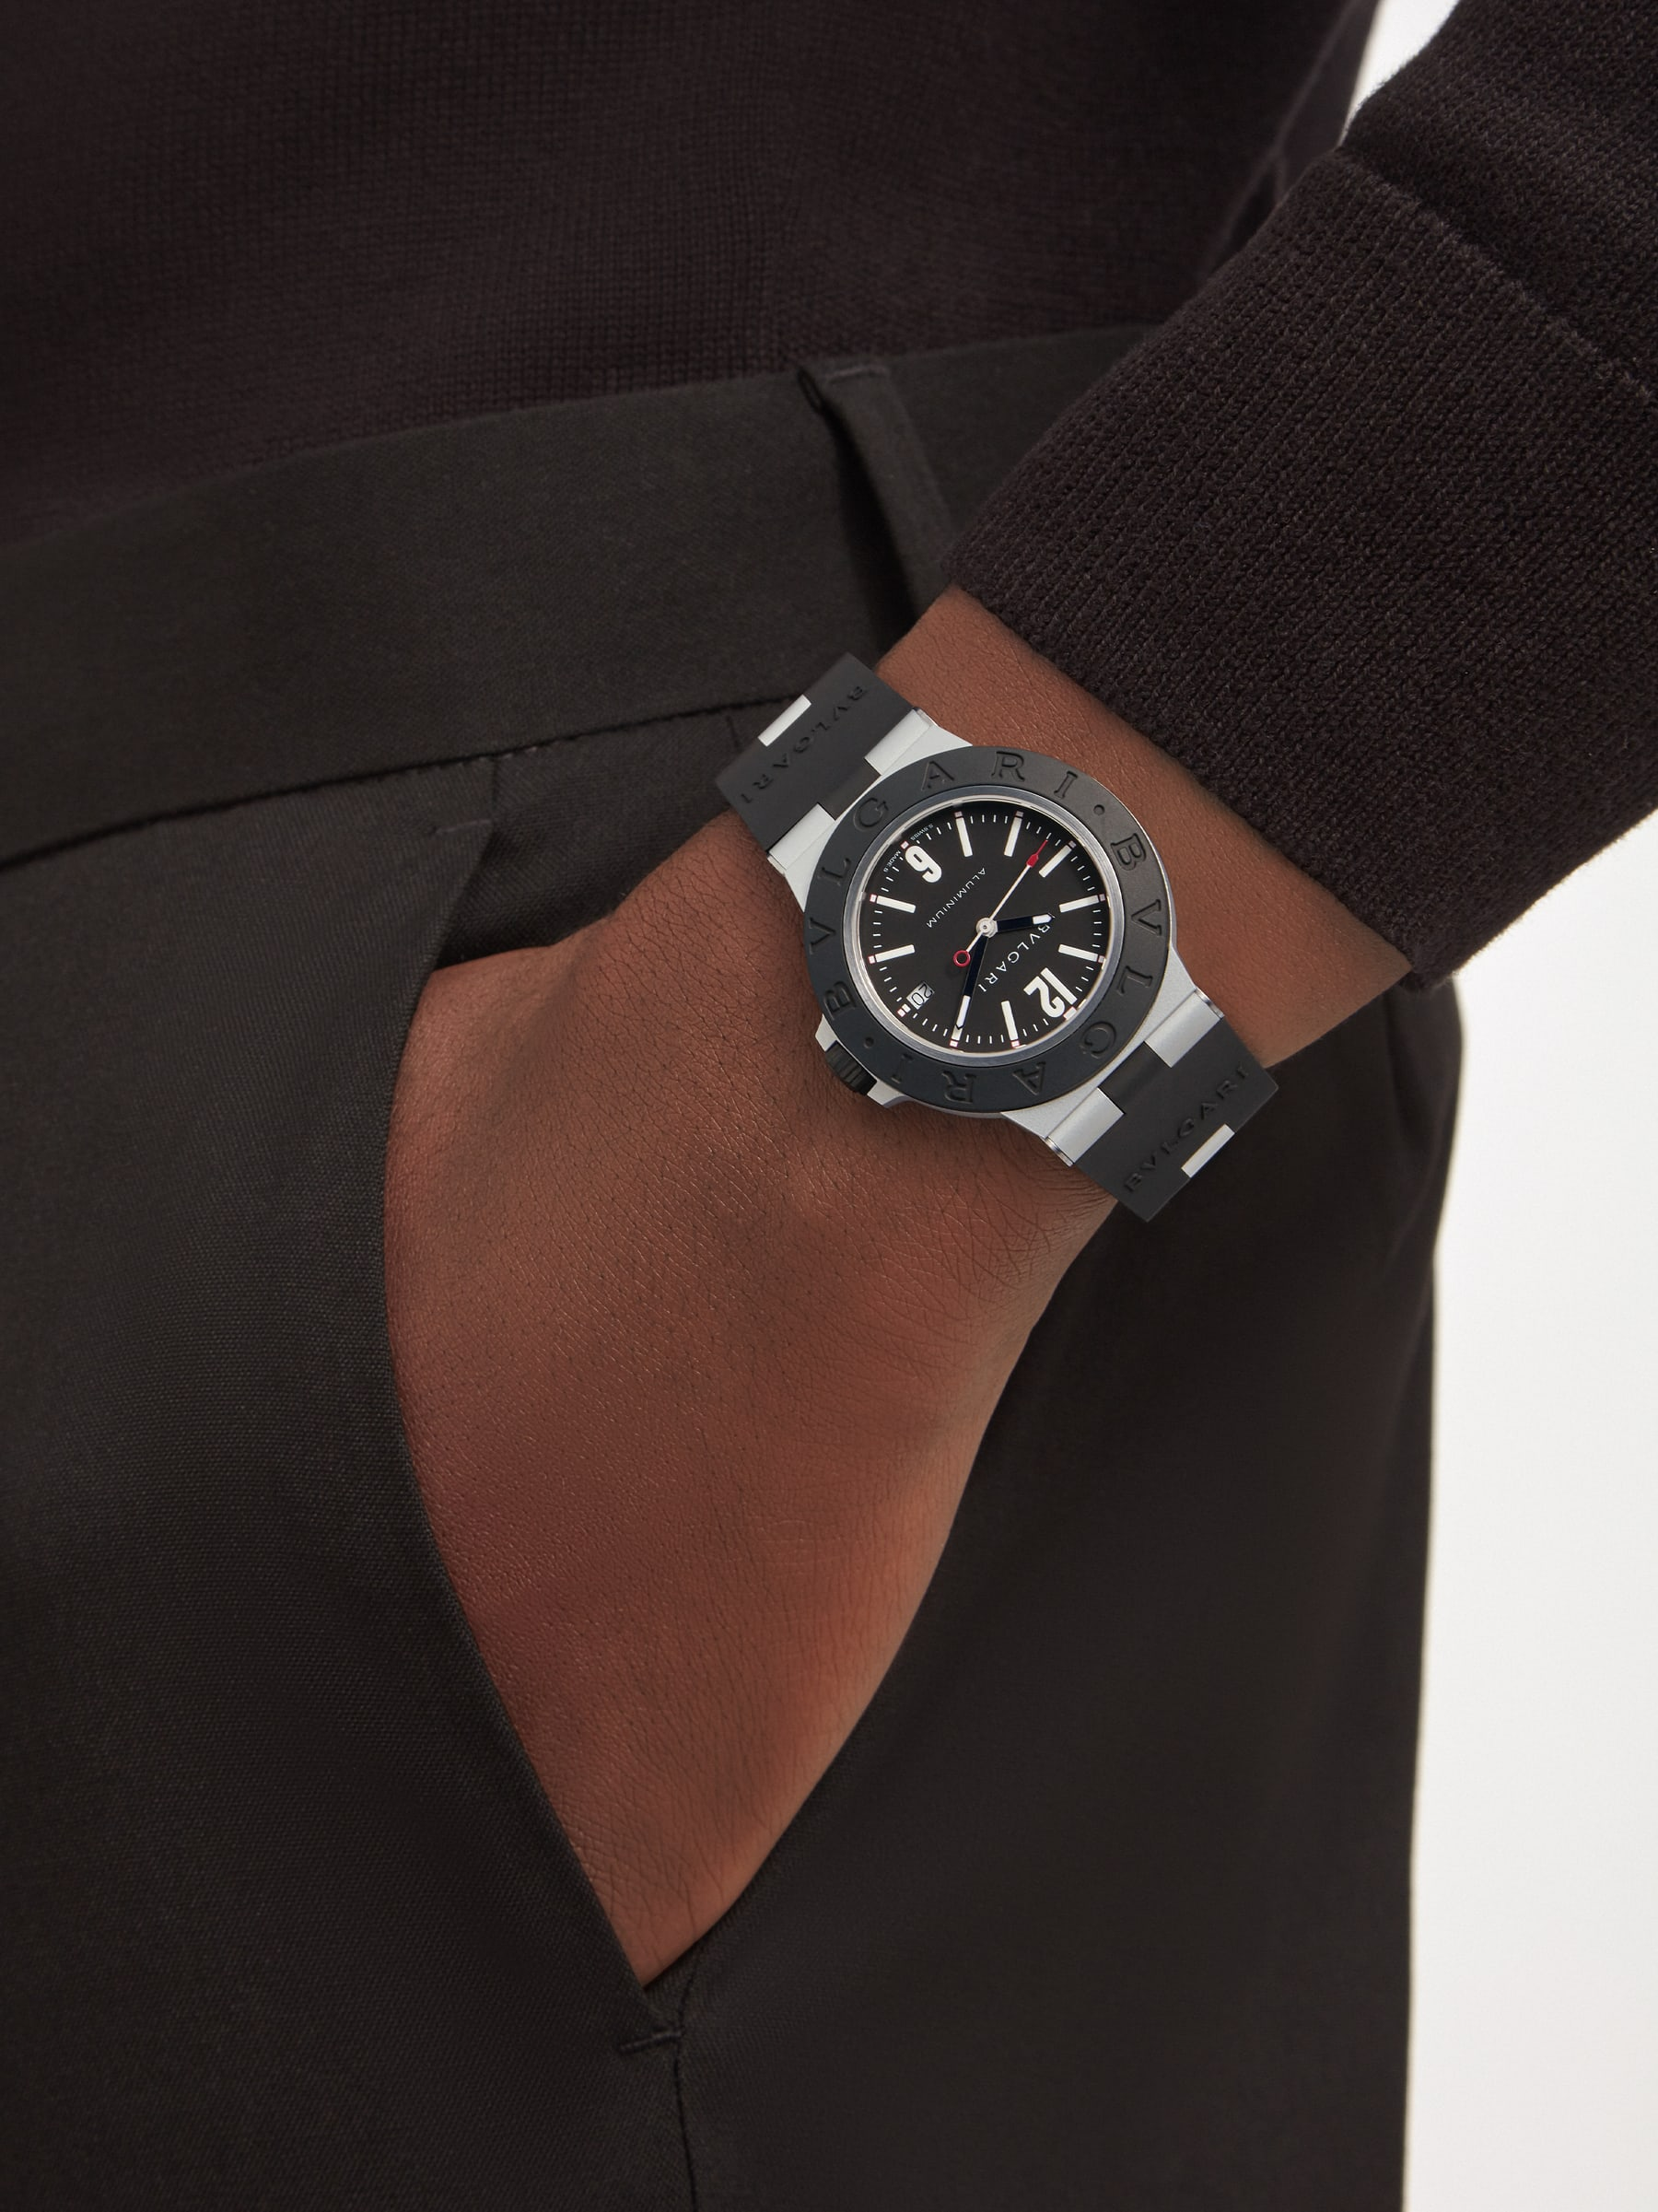 Bvlgari Aluminium watch with mechanical movement with automatic winding, 40 mm aluminum and titanium case, black rubber bezel with BVLGARI BVLGARI engraving, black dial and black rubber bracelet. Water-resistant up to 100 meters. 103445 image 2